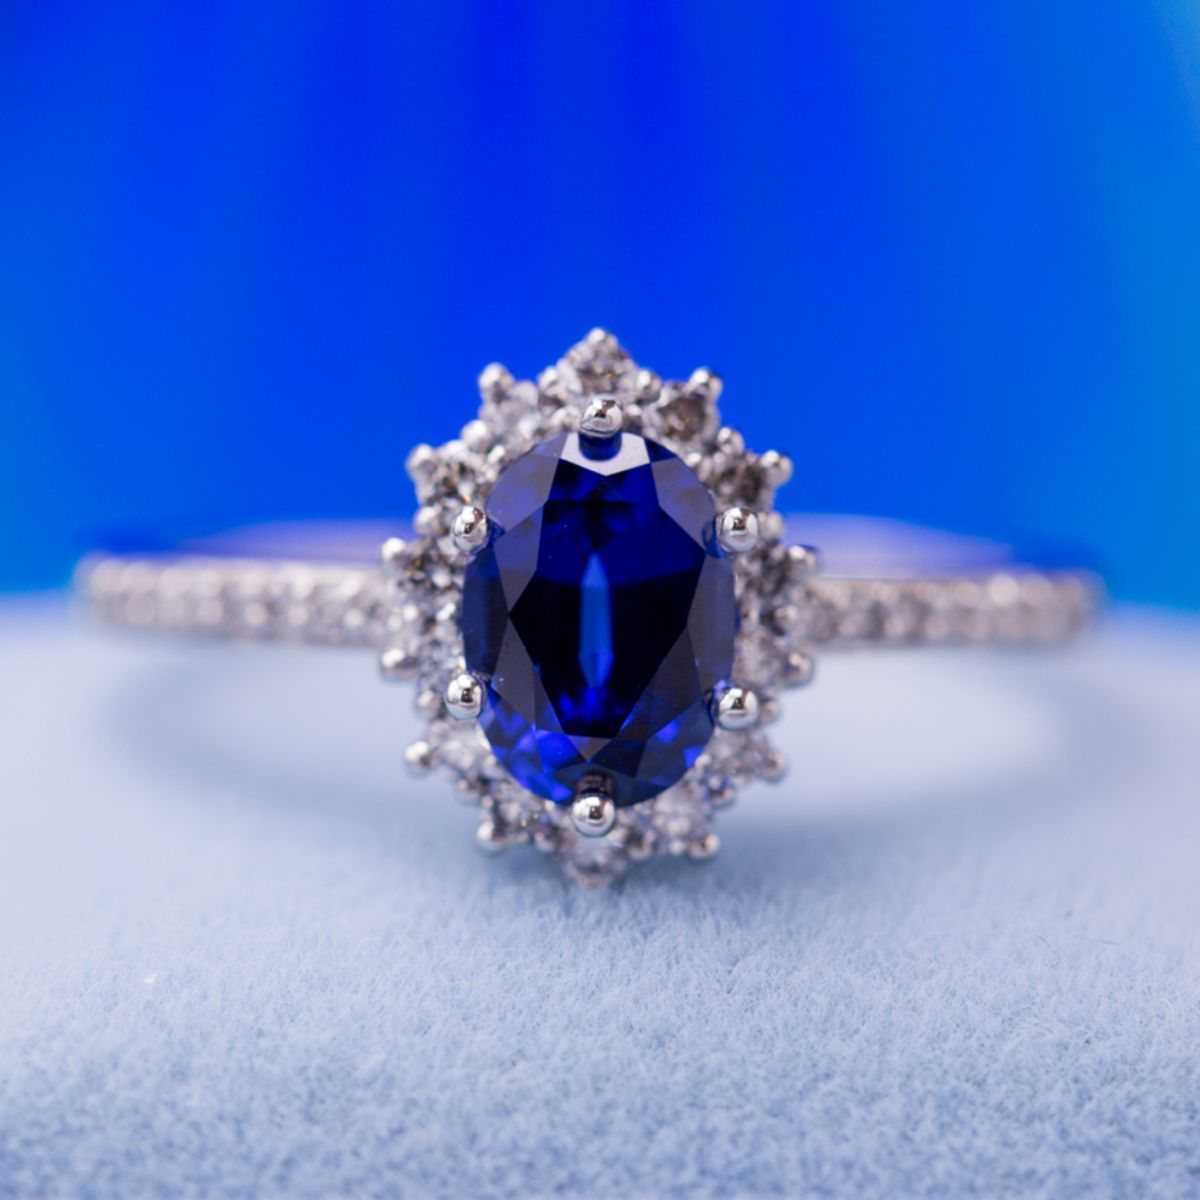 blue royal australia gemstones fine in sydney deep loose oval natural from sapphire coloured ceylon available stone gems king